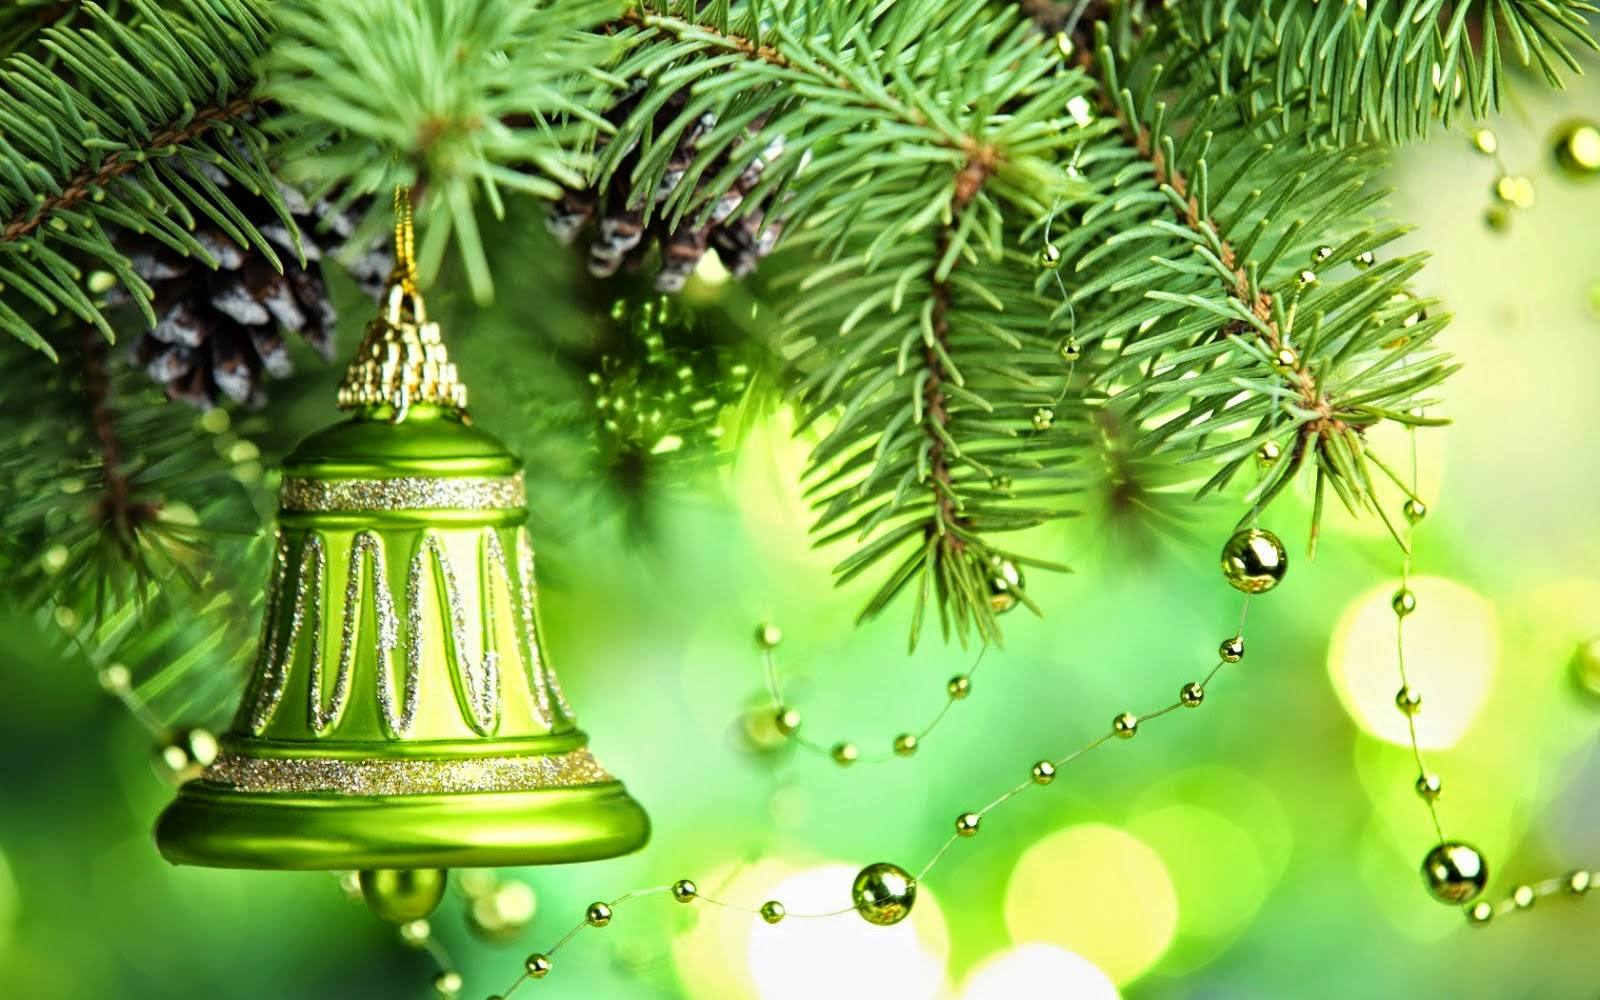 Green-theme-Christmas-bell-decorated-in-xmas-tree-photo-design-idea-images-for-home-.jpg